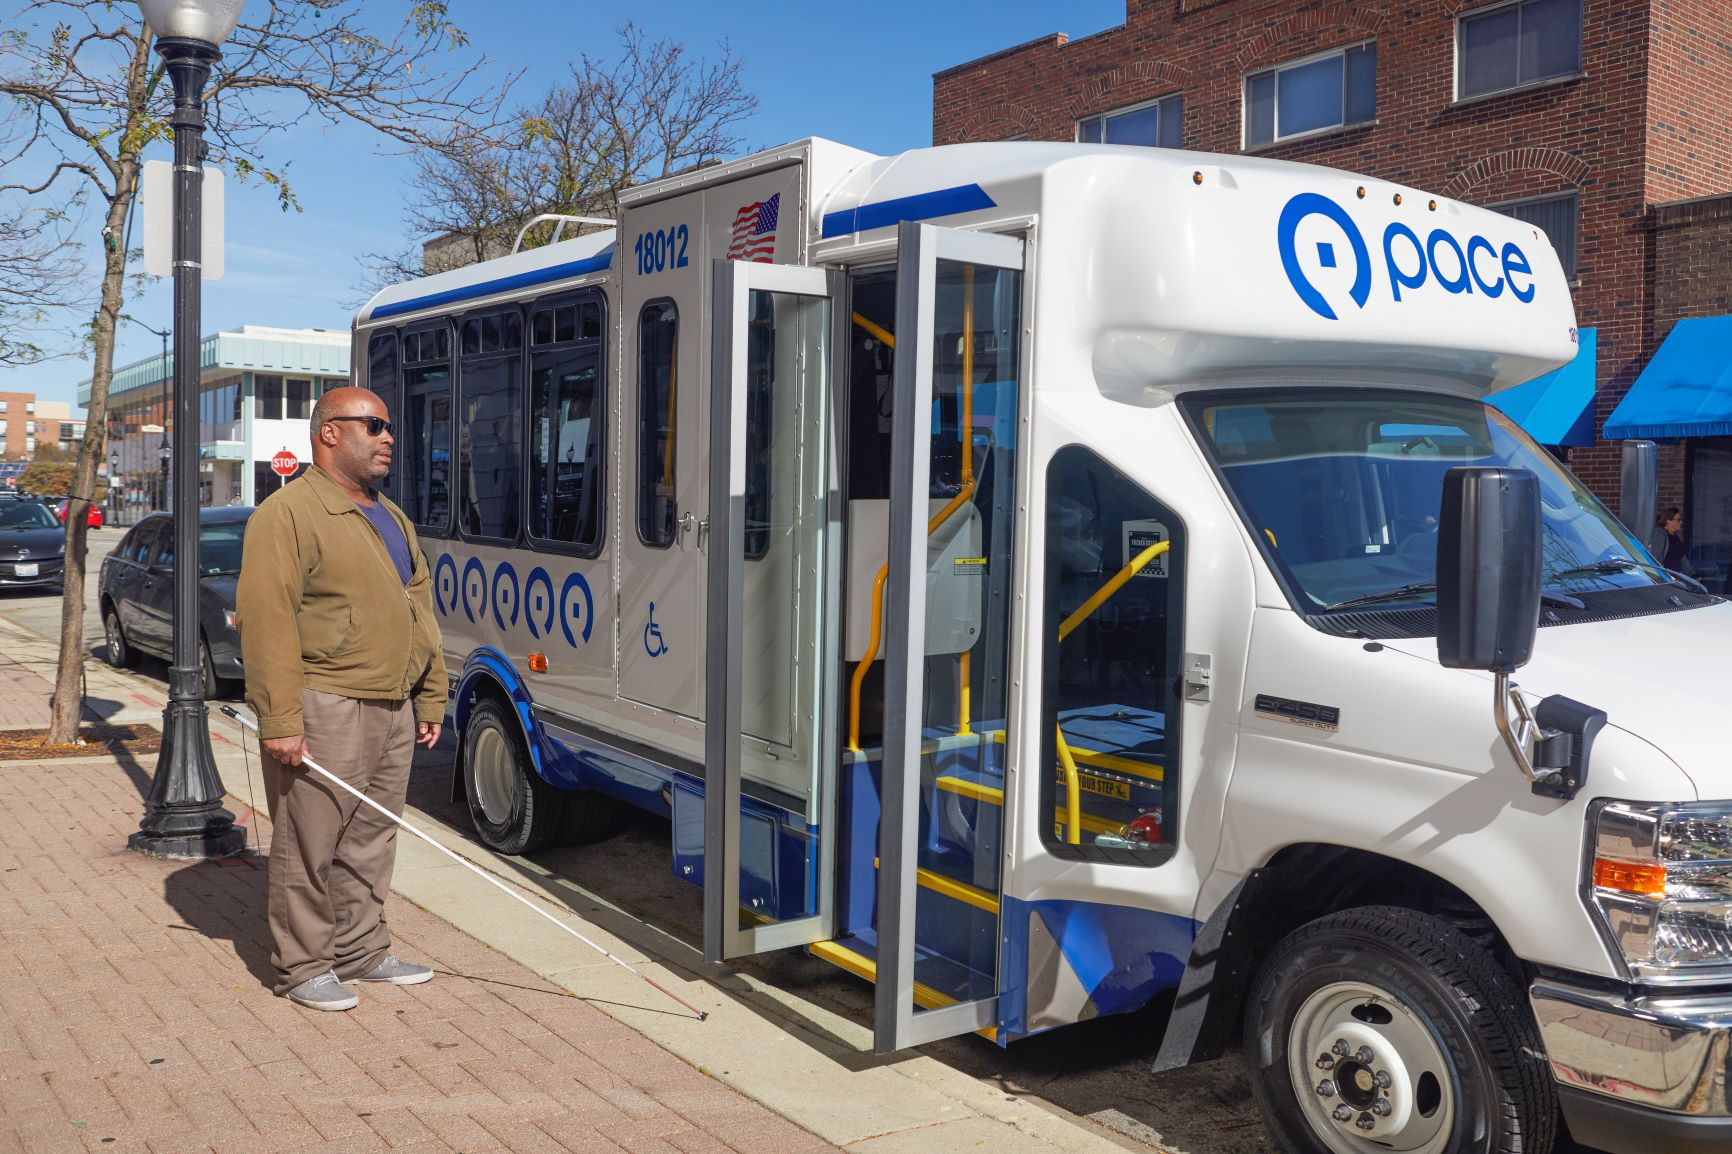 visually impaired rider boards paratransit bus